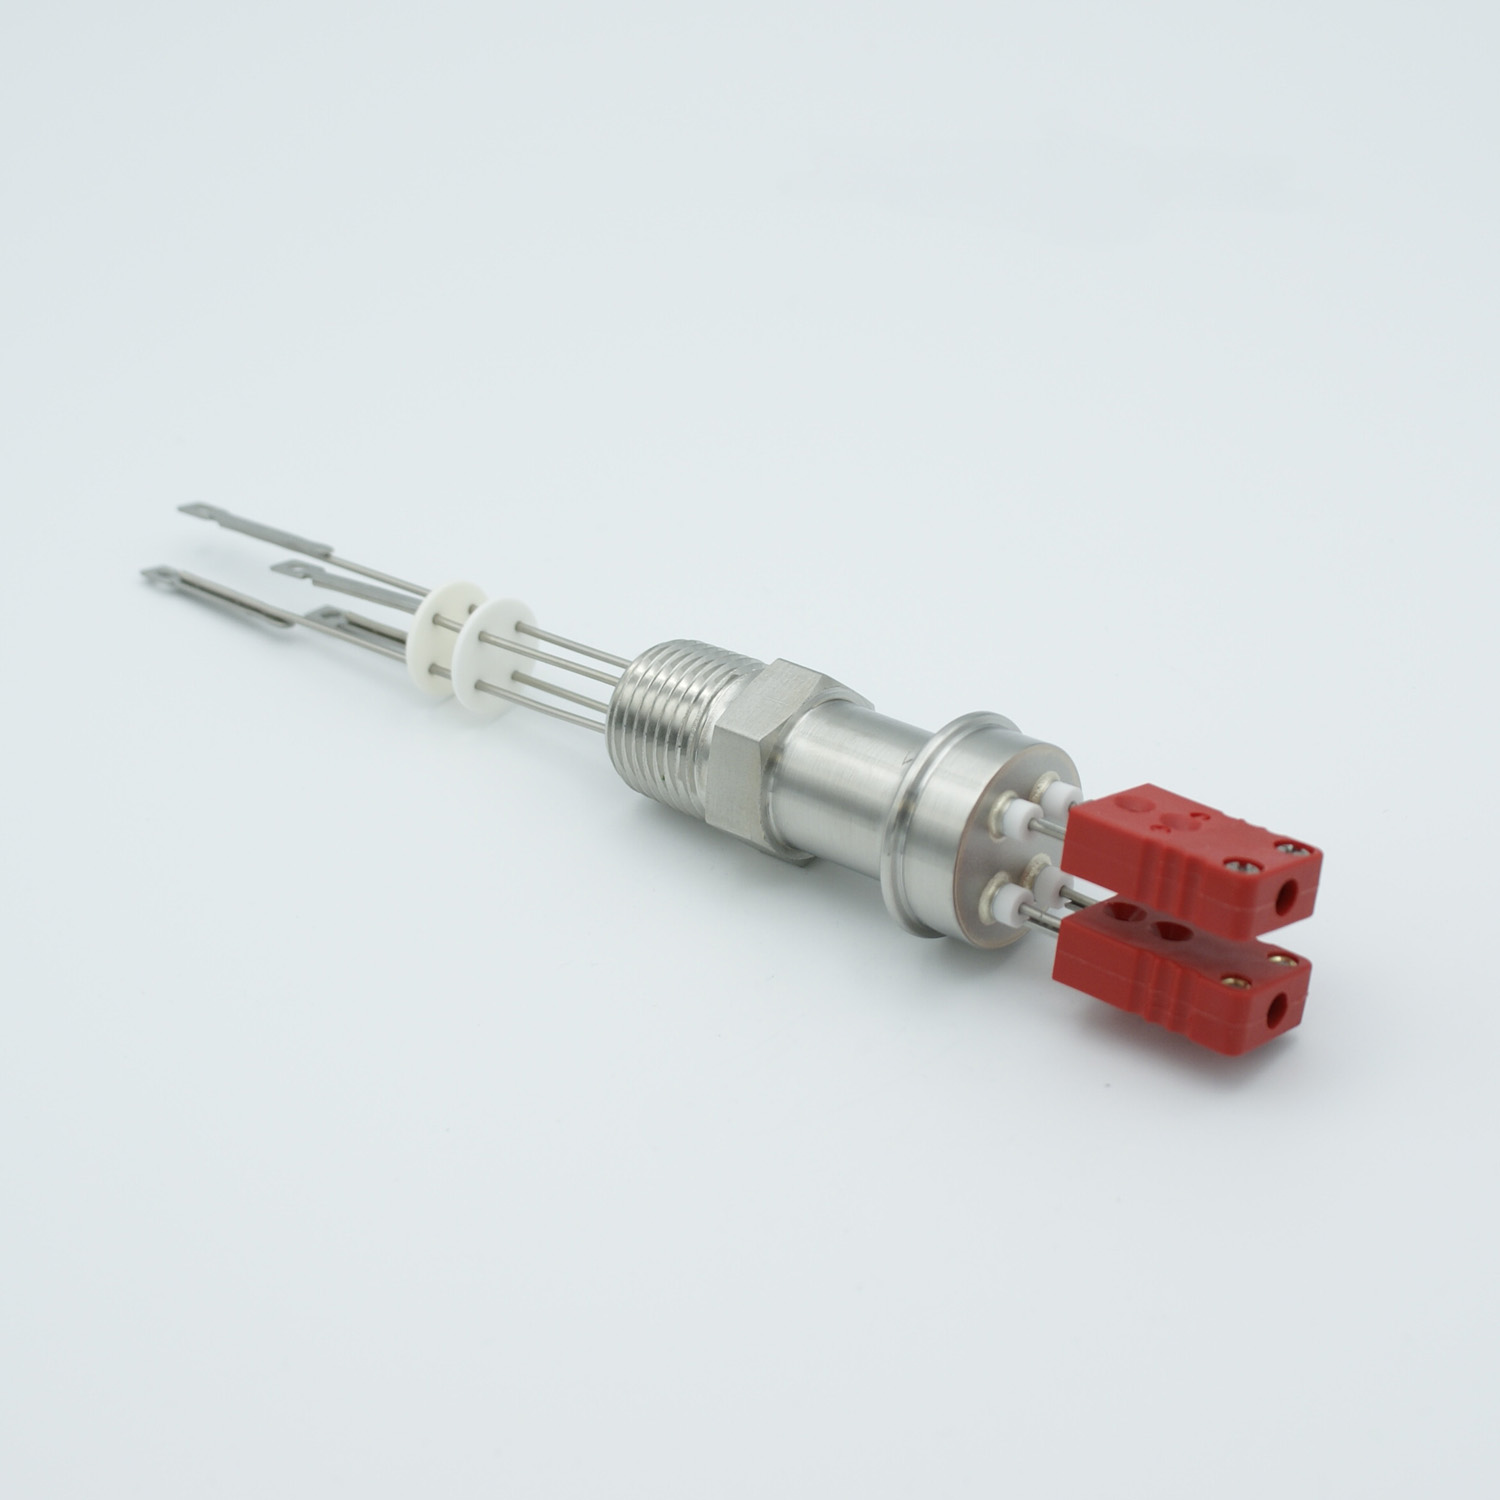 2 pair Thermocouple type-C feedthrough with both side connectors included, NPT 1/2